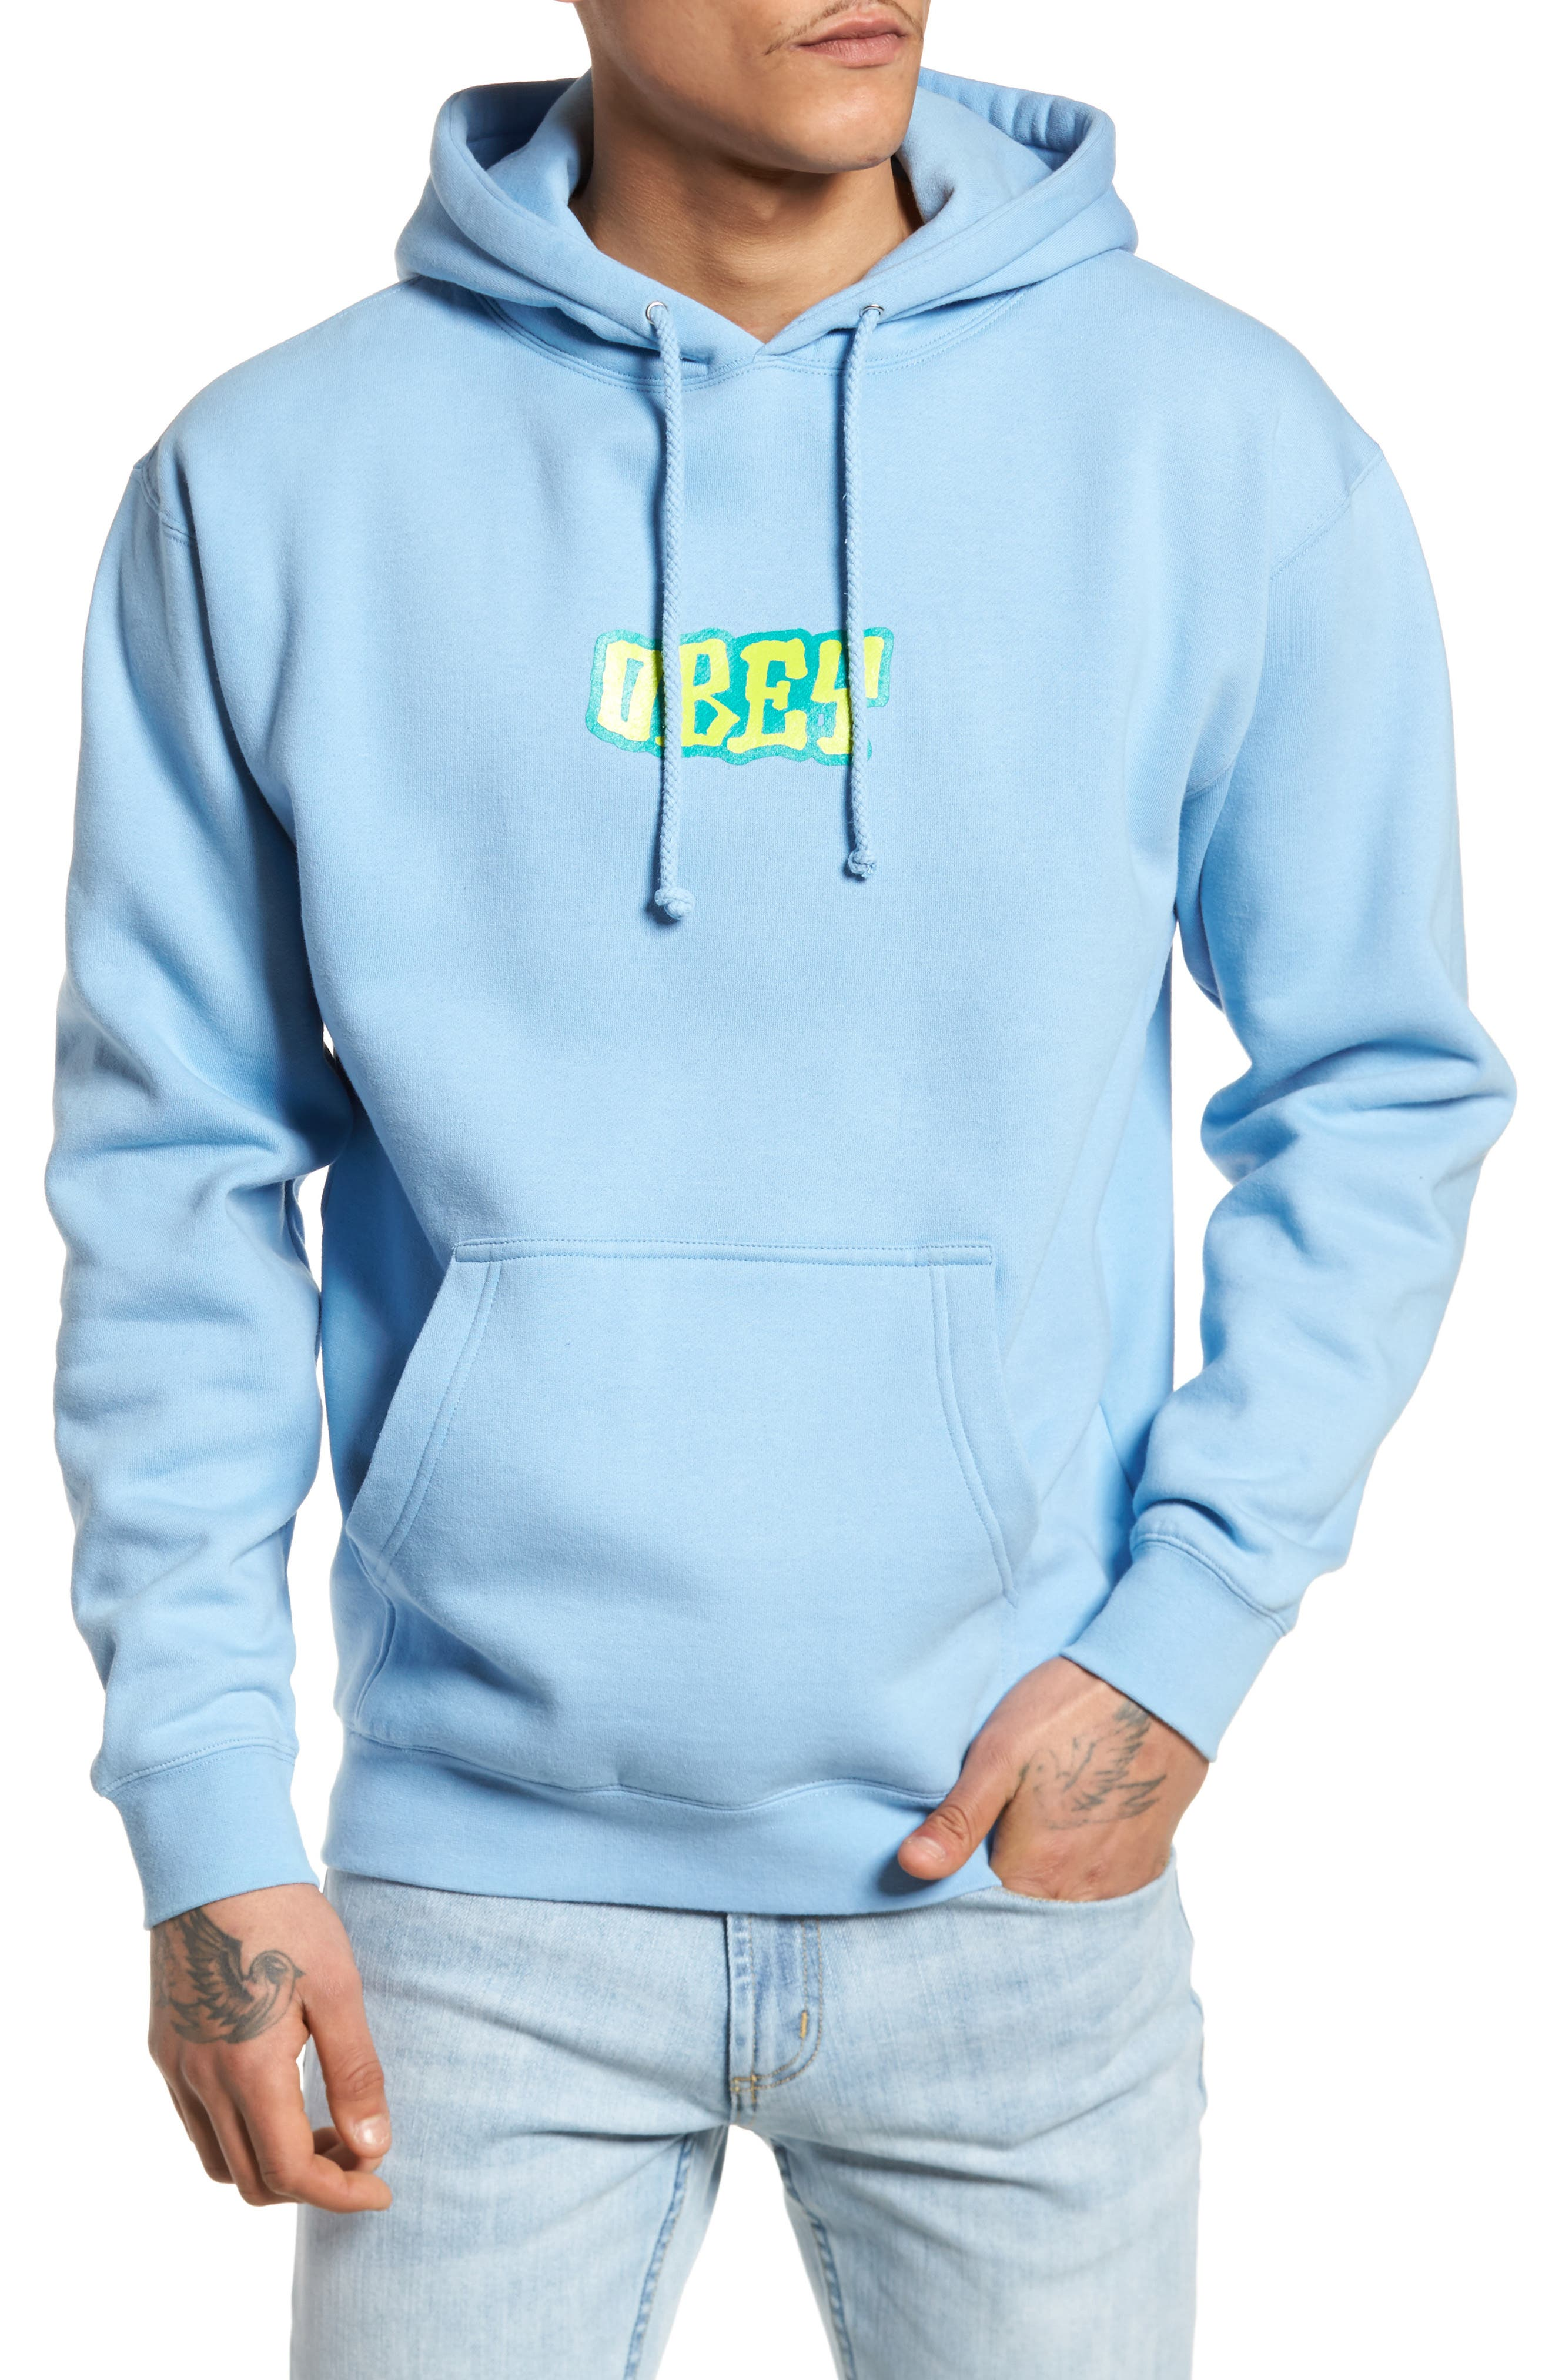 Better Days Hoodie,                         Main,                         color, 460